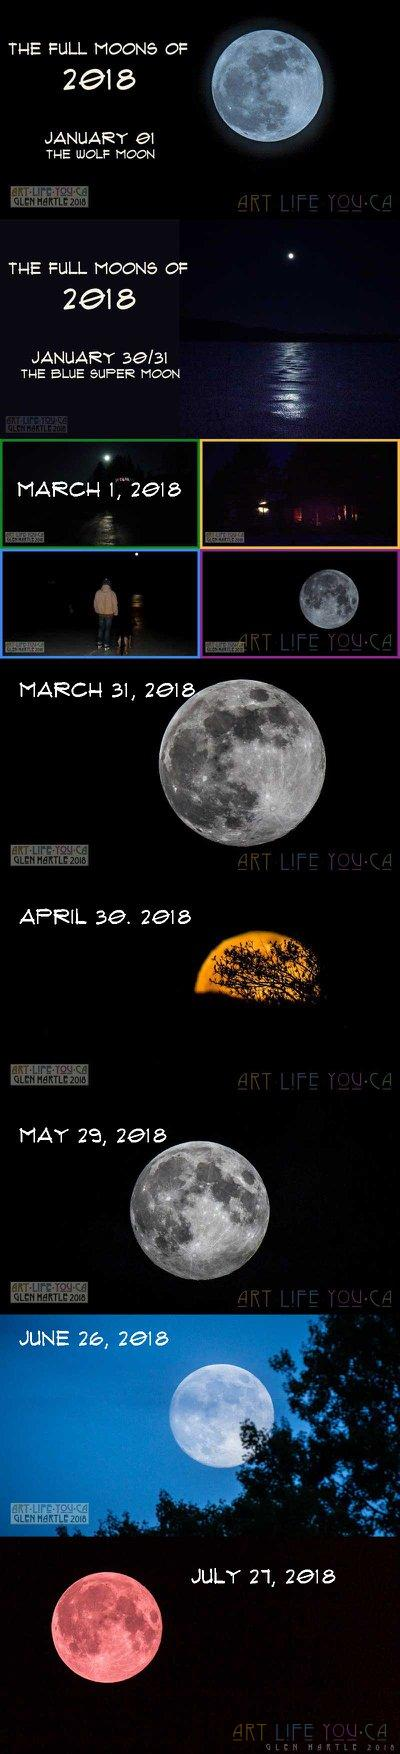 """Full Moons of 2018"" mini-challenge – last night's ""blood"" moon added (I may have used a bit of license in the edits …)"